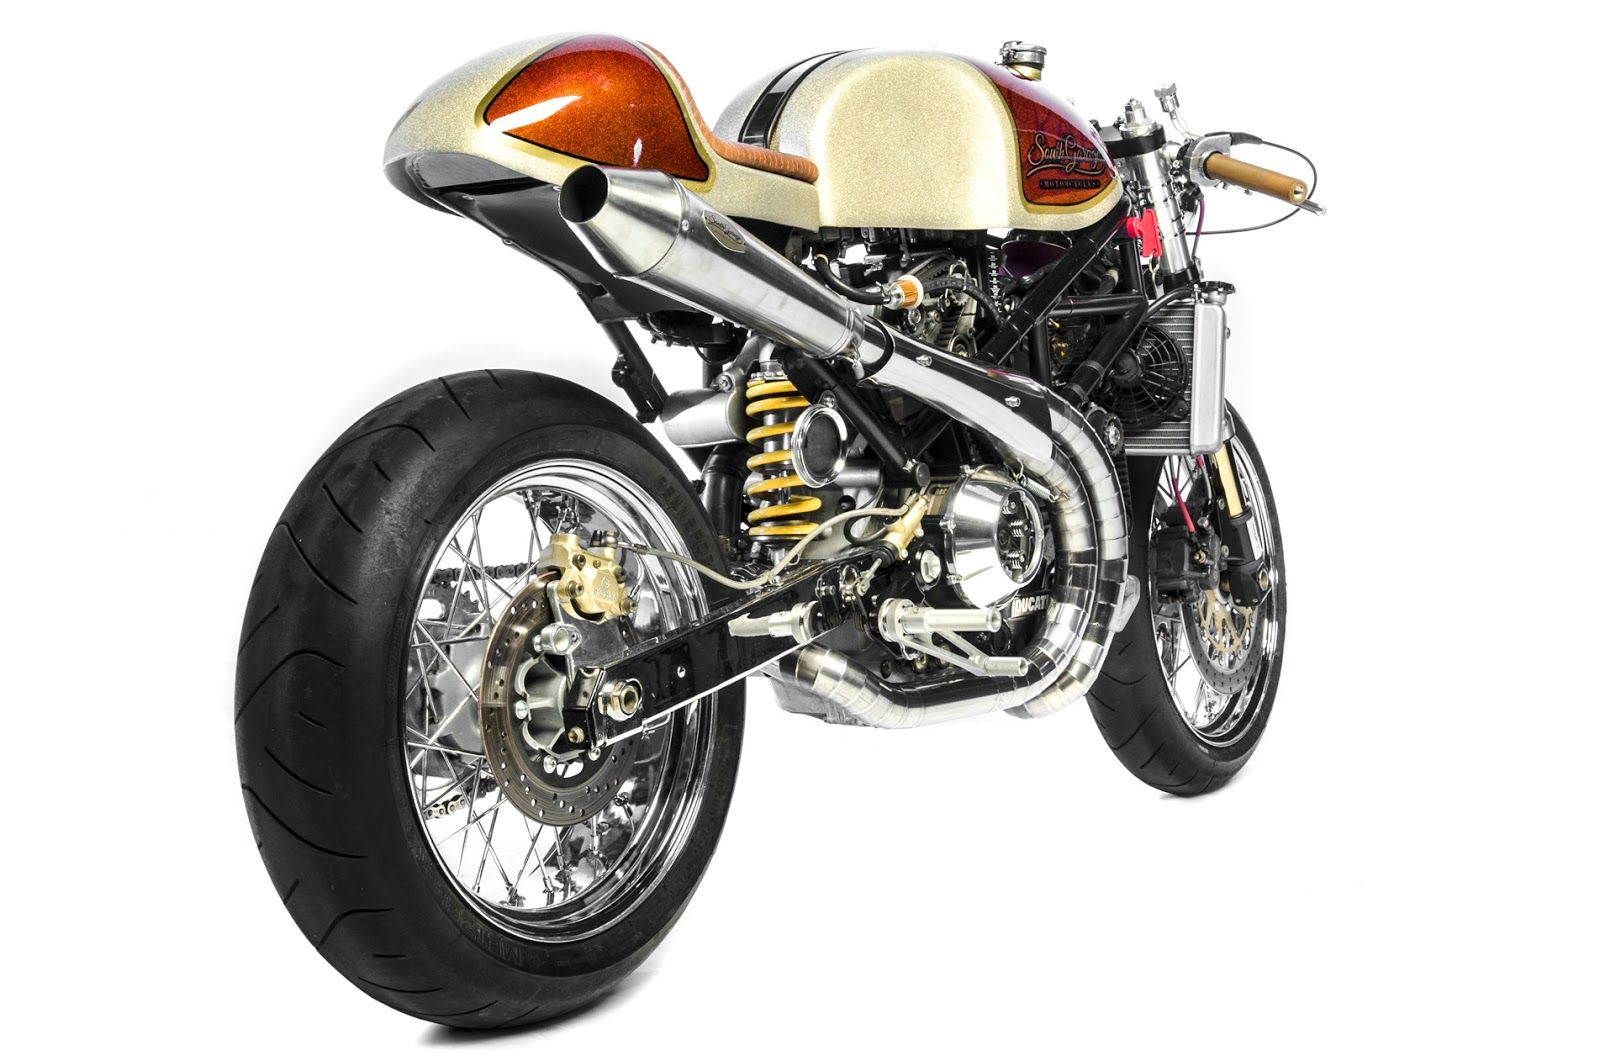 Kelevra Ducati S4R Cafe Racer | Places to Visit | Ducati cafe racer